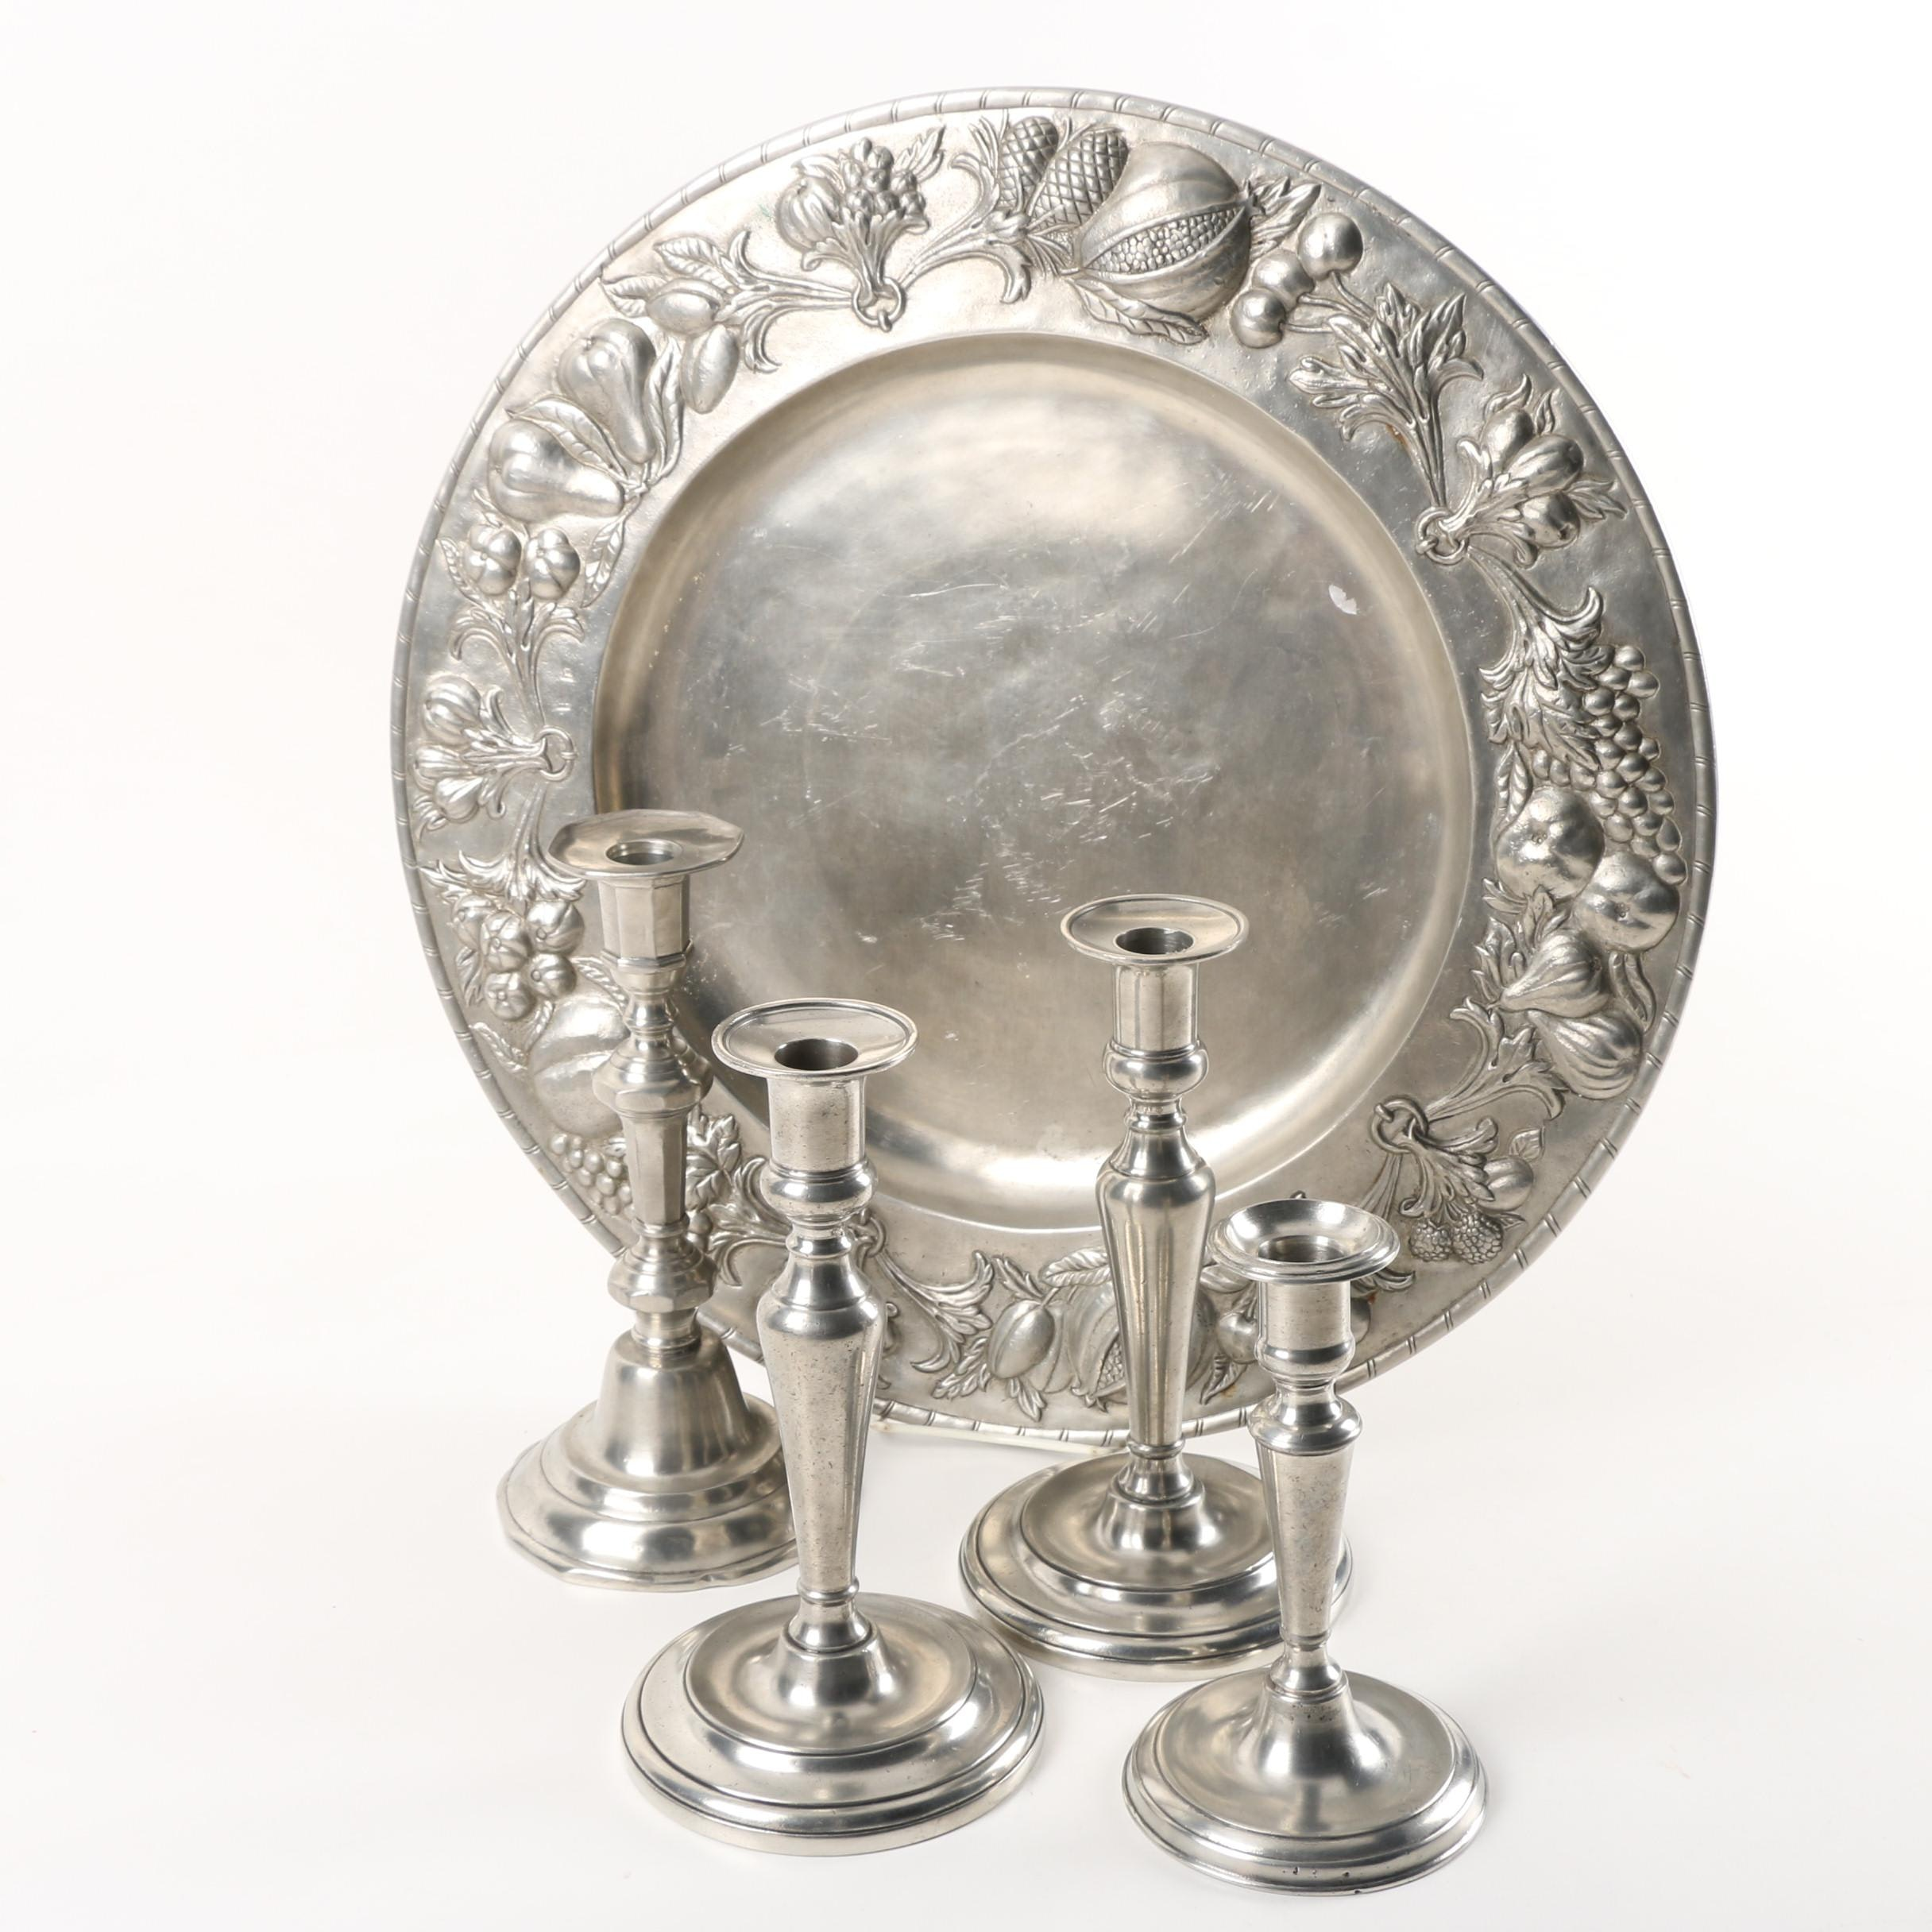 La Bottega del Peltro and Cosi Tabellini Italian Pewter Tray and Candlesticks